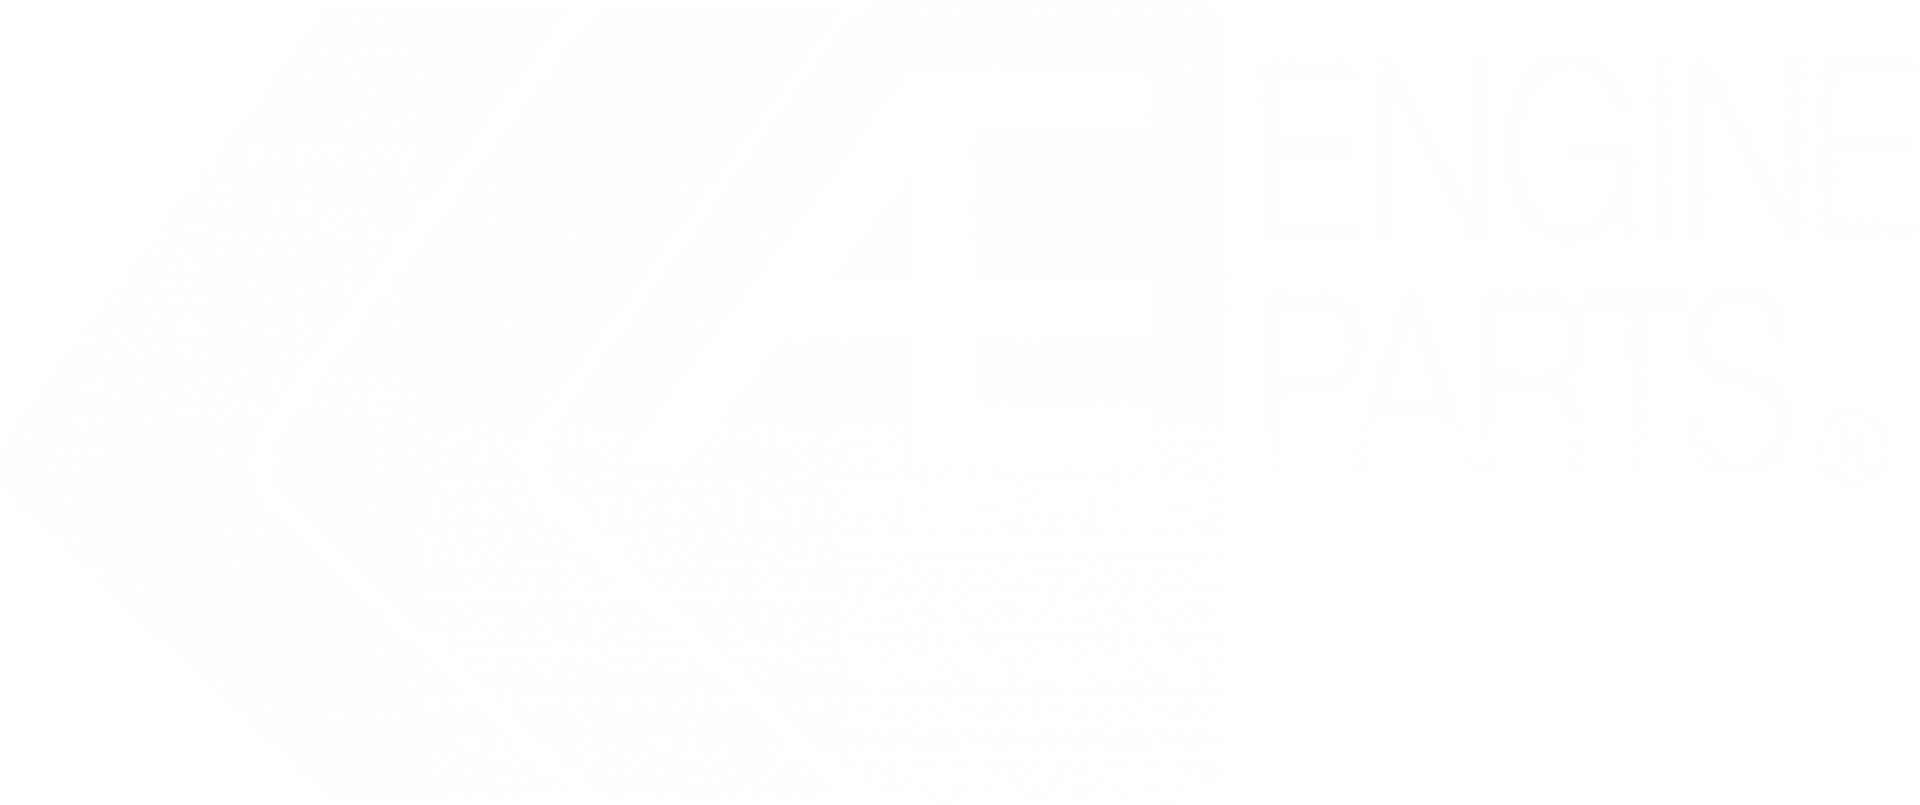 ae-engine-parts-01-logo-transparent